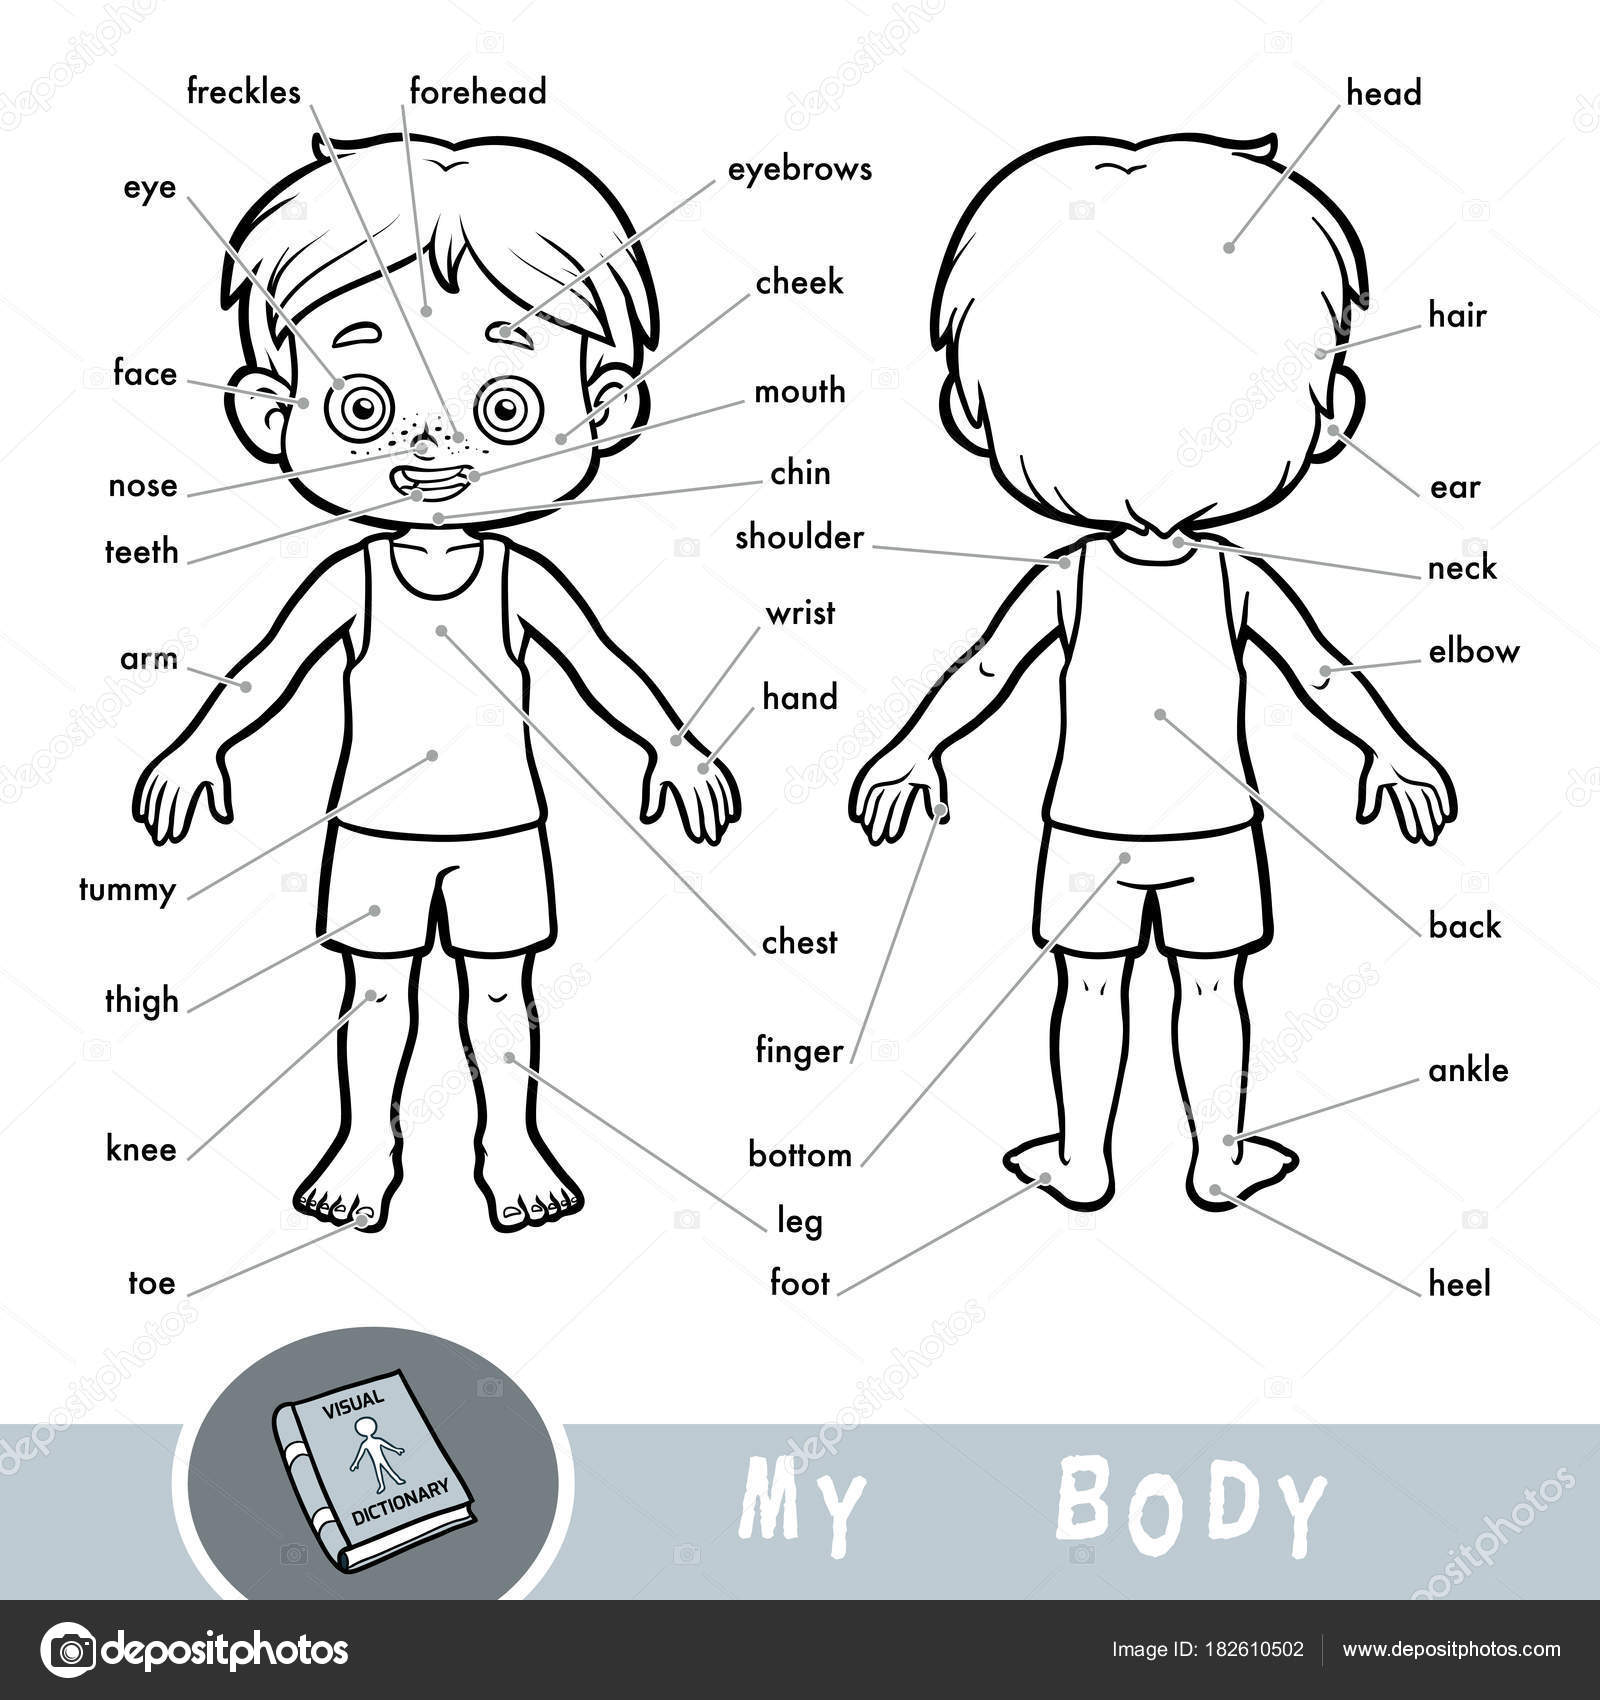 Visual Dictionary For Children About The Human Body My